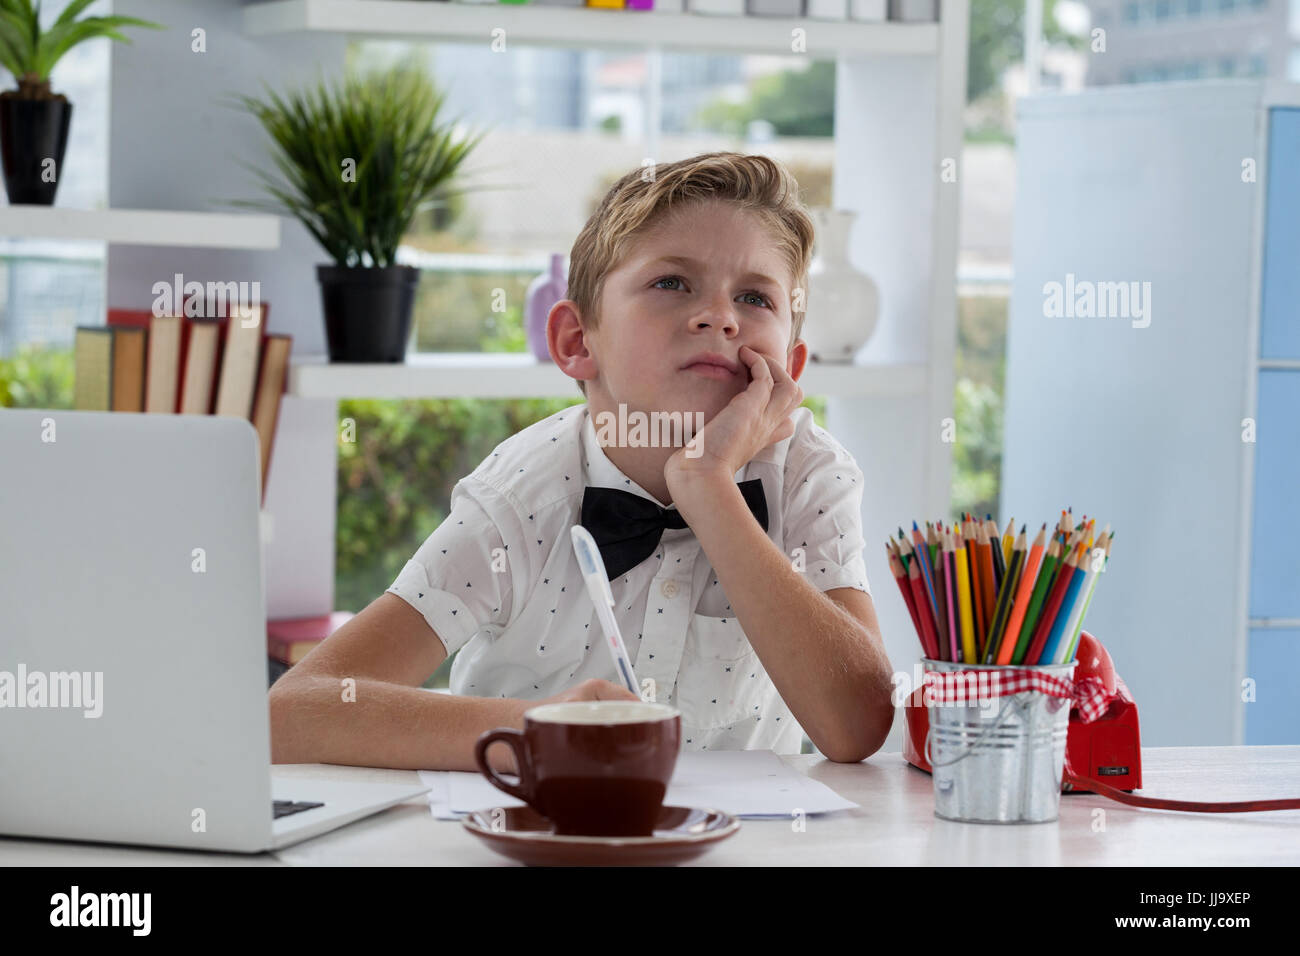 Thoughtful businessman with hand on chin sitting at desk in office - Stock Image